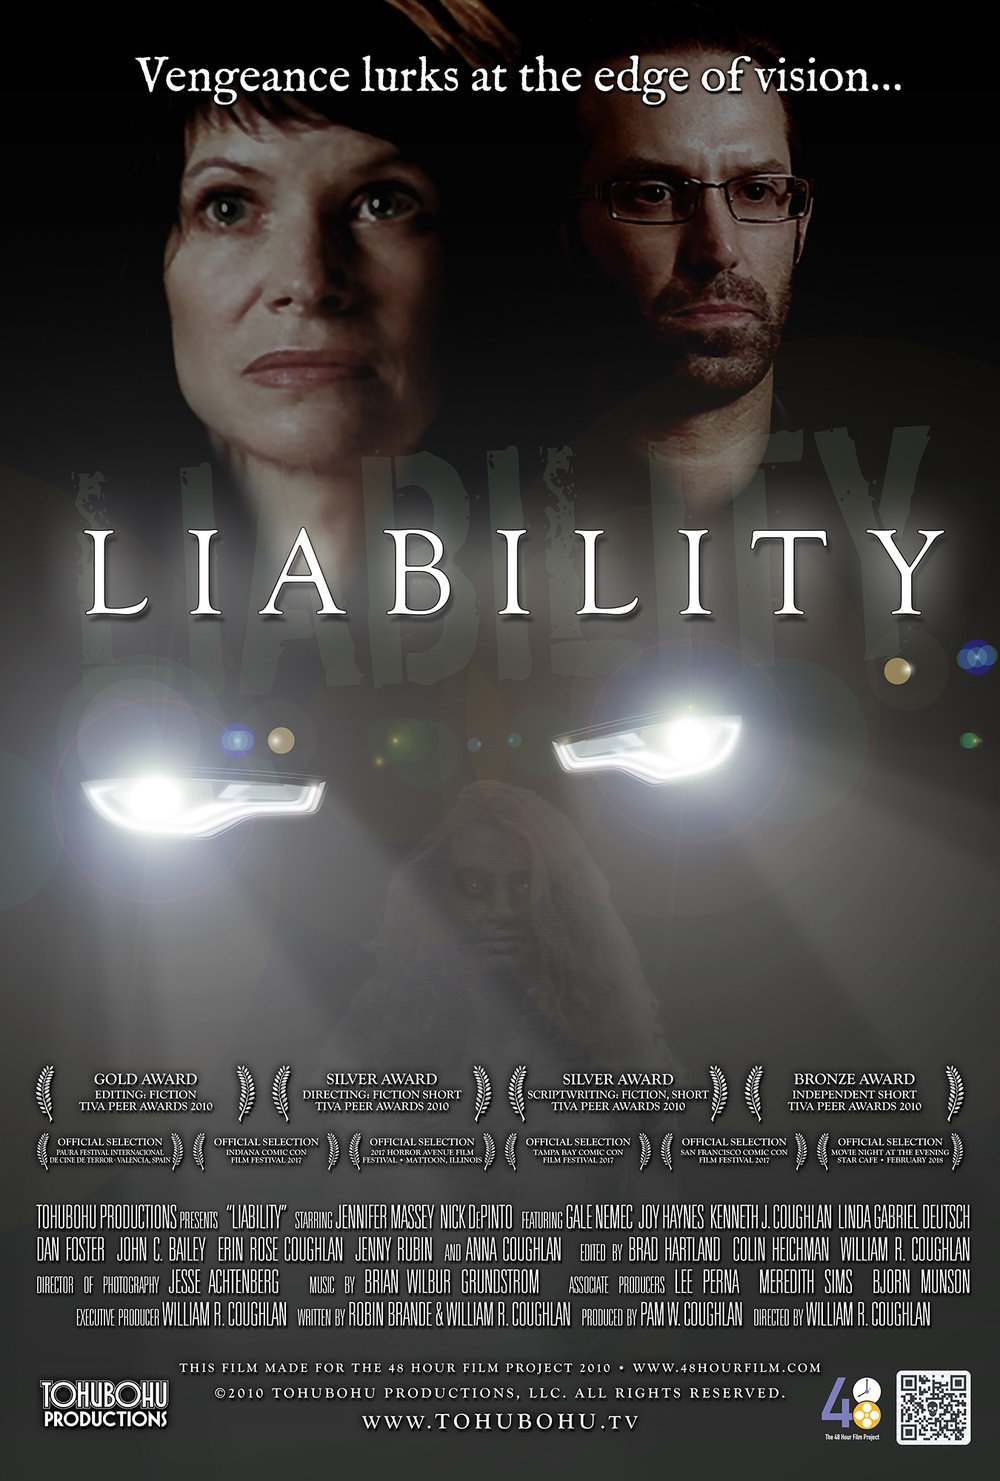 "Liability - 2010 · 8:58 · Written by Robin Brande · PRODUCED by Pam W. COUGHLAN · DIRECTED BY WILLIAM R. COUGHLANWhen three sudden deaths befall members of a small law firm, Karen Dunmore begins to suspect that they may be retribution for a terrible crime and its subsequent cover-up. Fearing for her family's safety, she desperately tries to convince her husband and his associates to take action. But will it be too late?Pushing the envelope for its eighth entry in the 48 Hour Film Project, Tohubohu ventured into the horror genre, under the mandate that whatever we produced would fall within the boundaries of a PG-13 rating (so no resorting to slasher-film clichés). With a script co-written by Robin Brande and director Wiliam R. Coughlan, ""Liability"" was produced entirely across the weekend of April 30th through May 2nd, 2010. The film premiered at the AFI Silver Theatre on Wednesday, May 5th. At the 2010 TIVA Peer Awards, the film took home a Bronze Award, two Silvers, and one Gold."